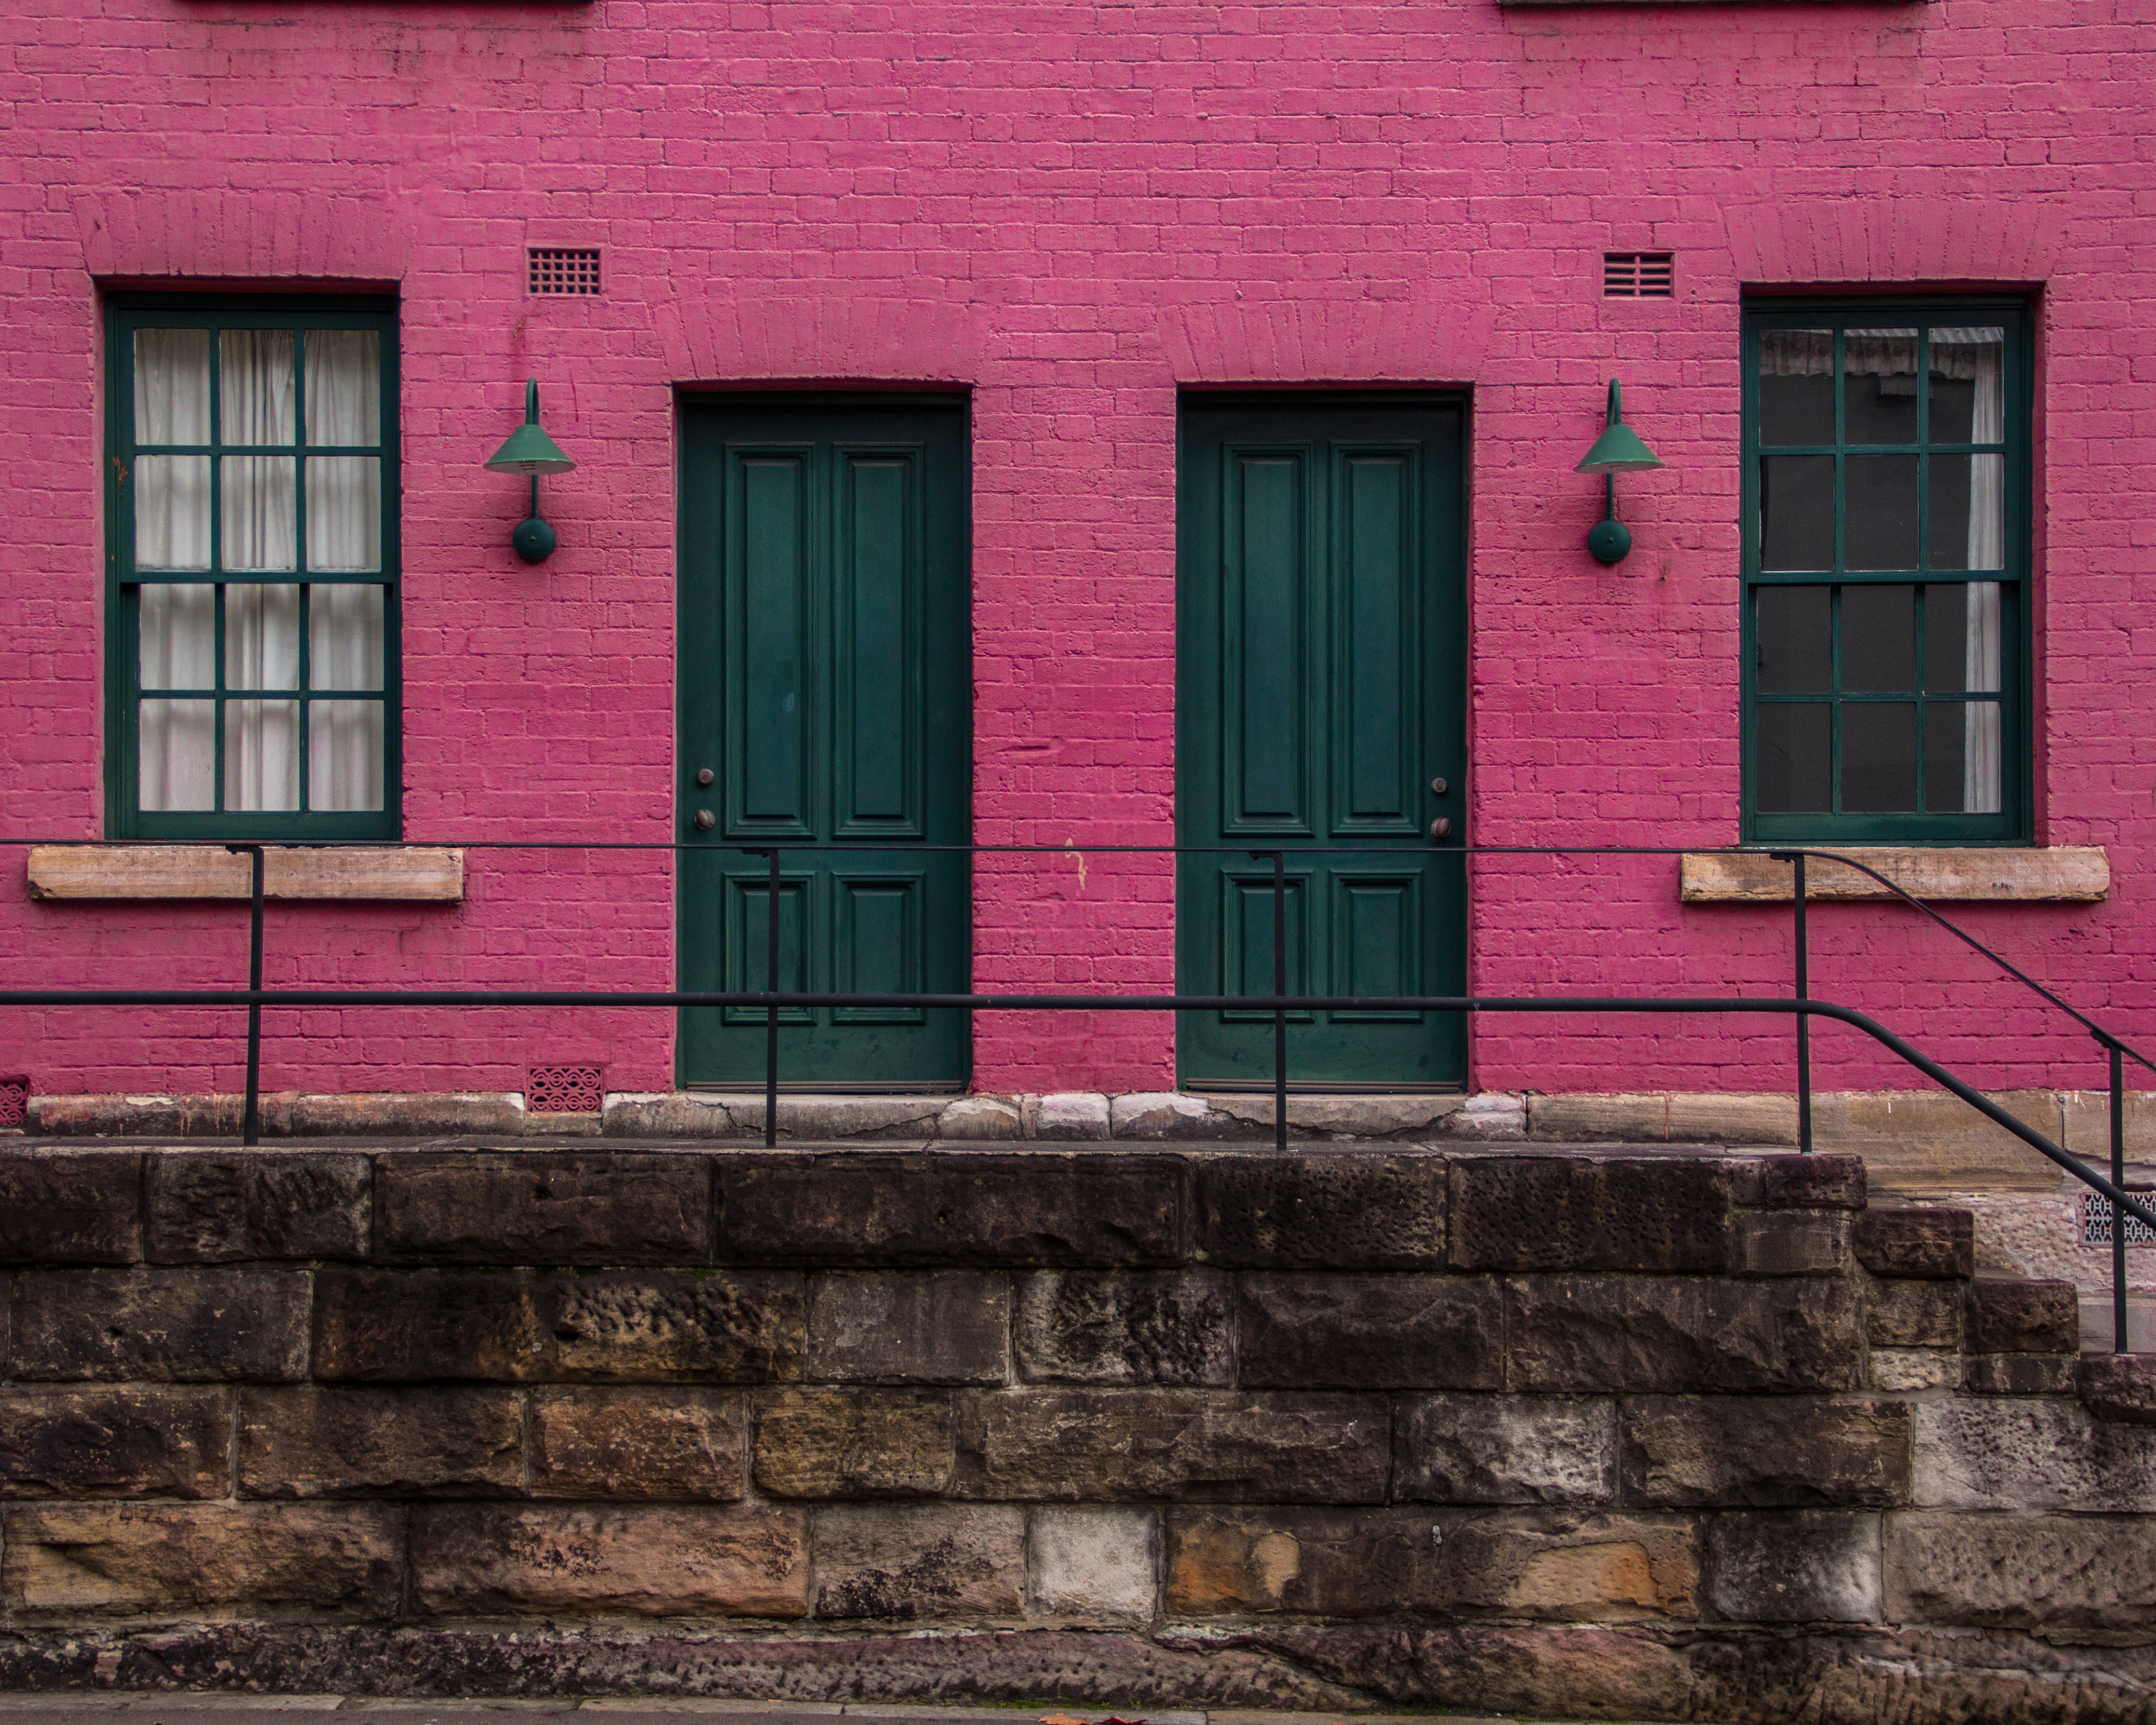 pink house with two doors